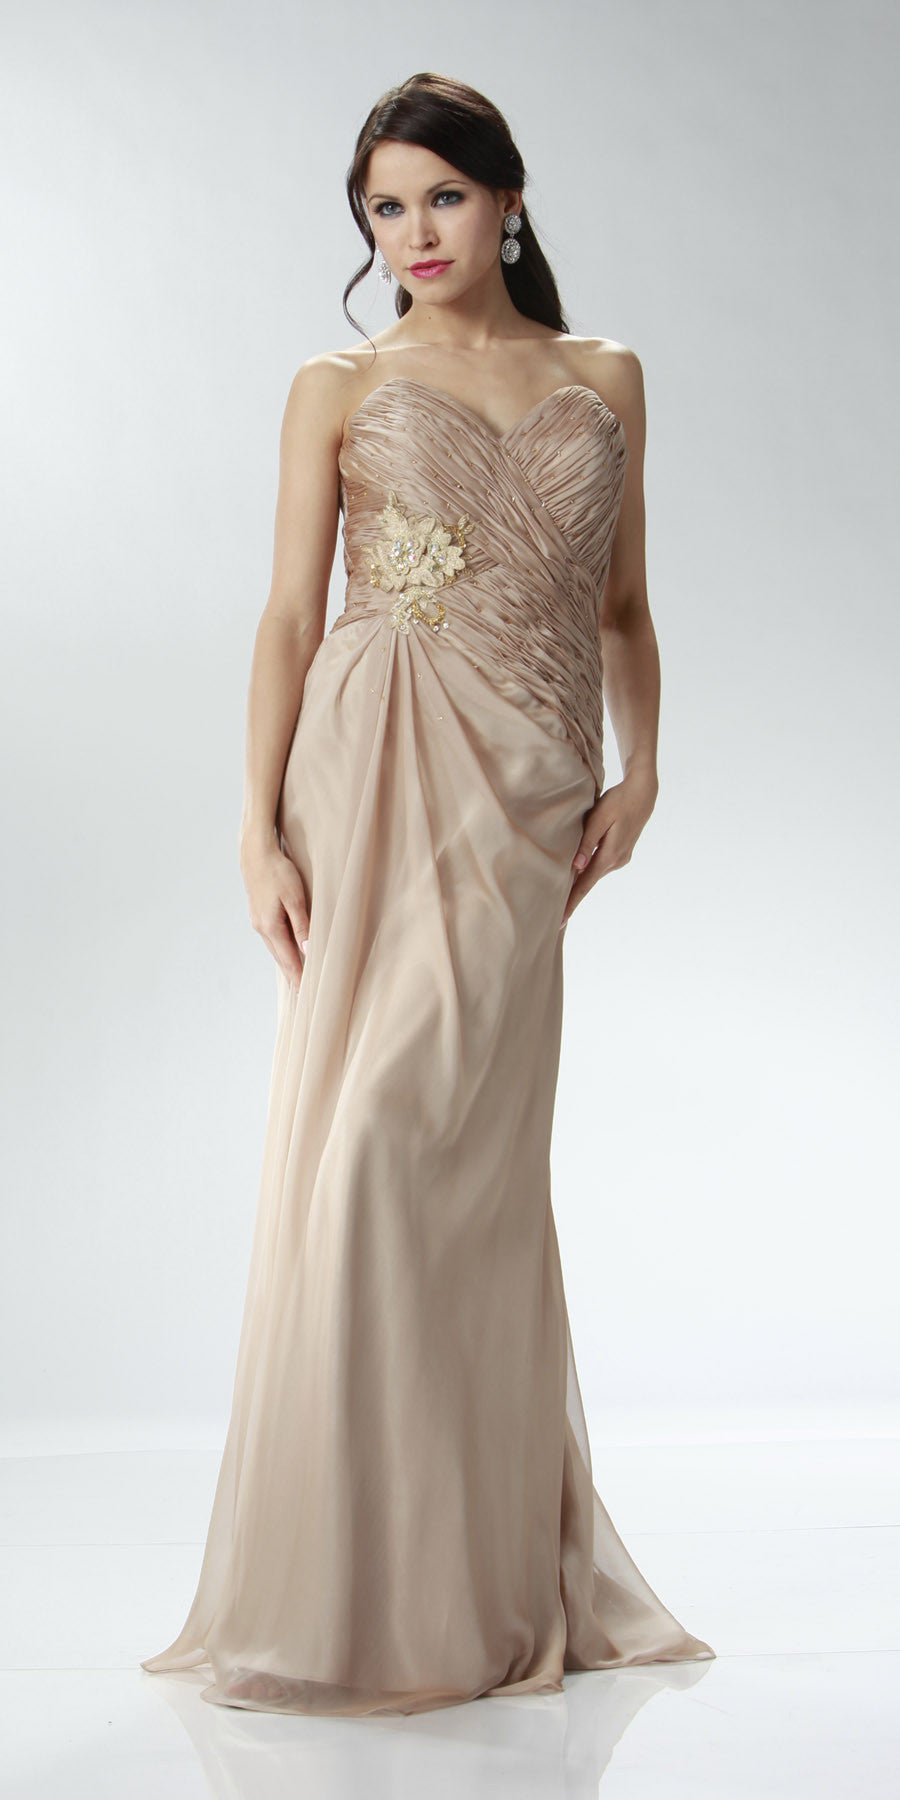 ON SPECIAL LIMITED STOCK - Champagne Full Length Evening Dress Strapless Sweetheart Ruched Gown